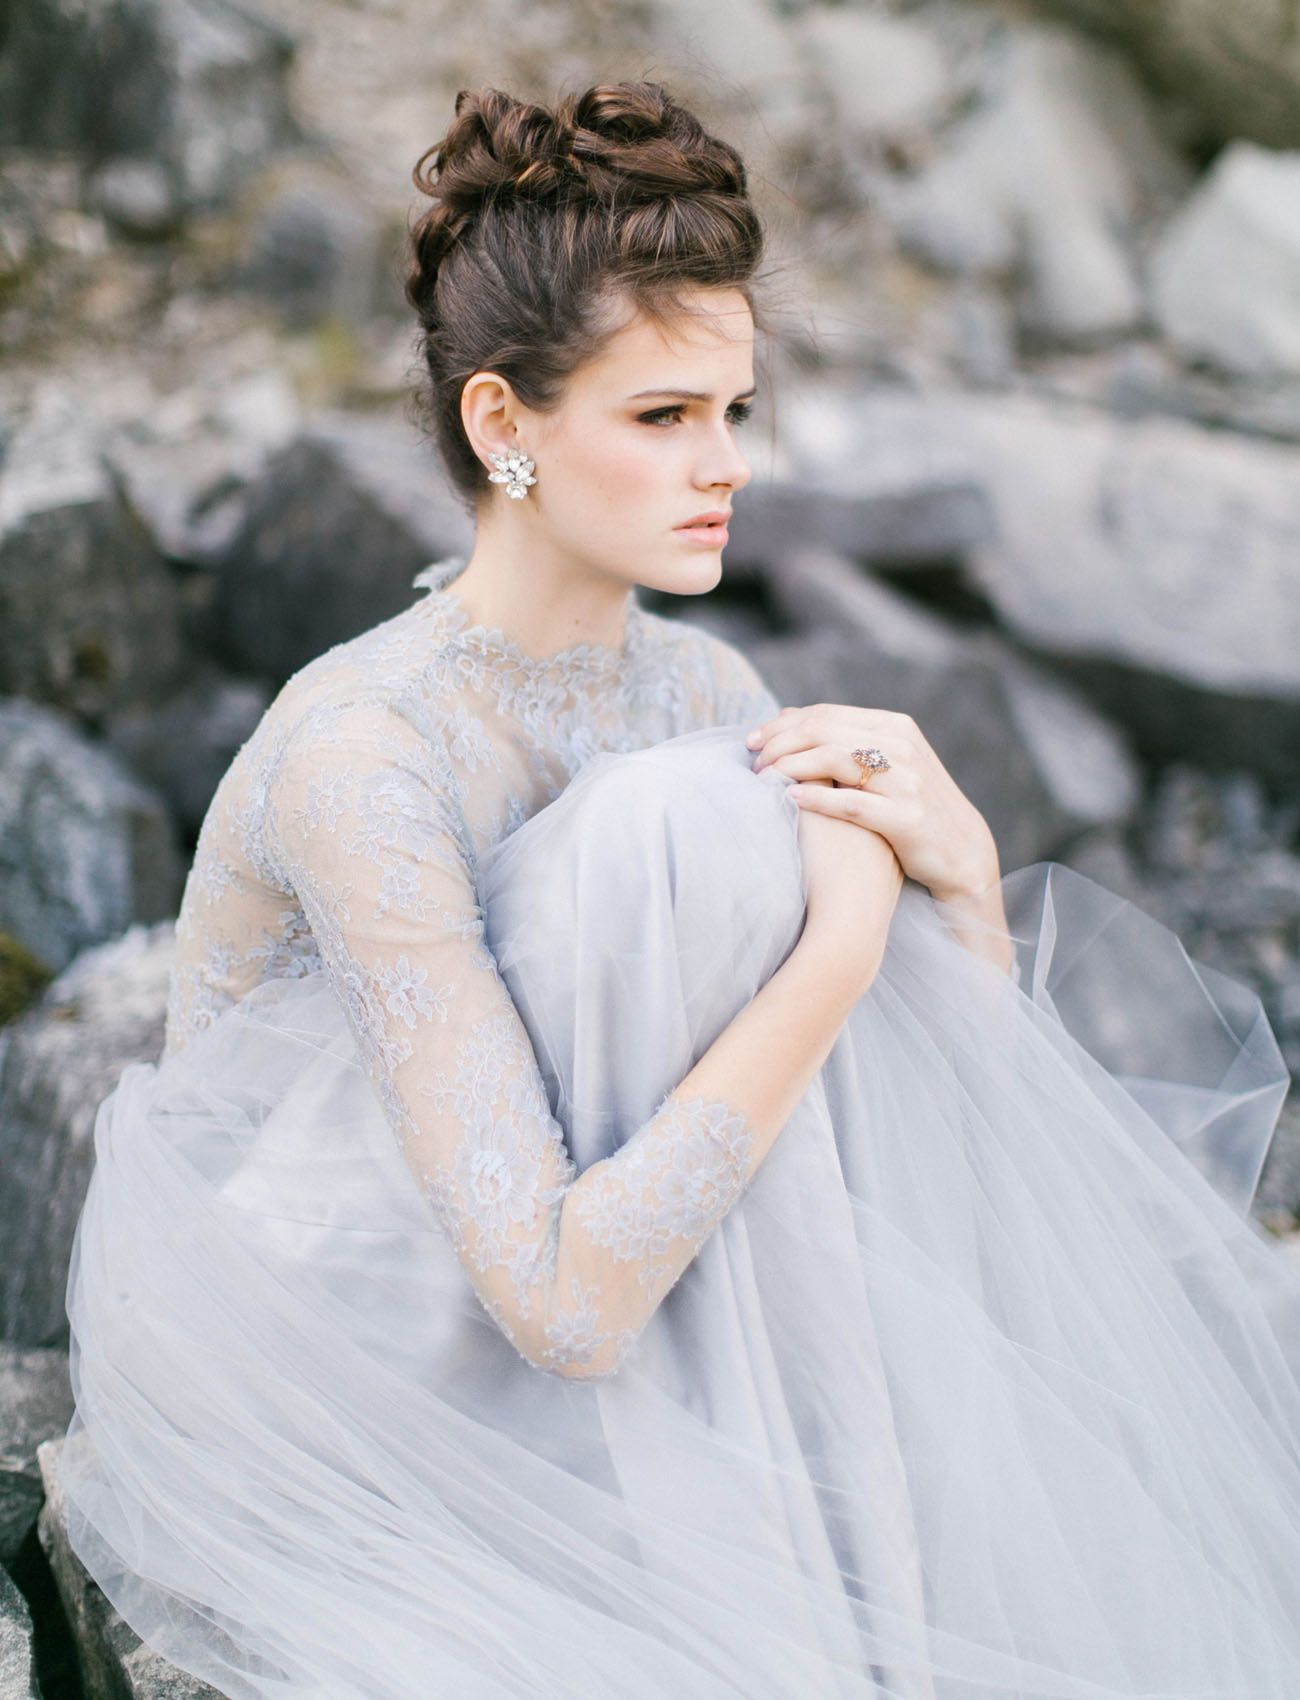 Winter Bridal Inspiration featuring Emily Riggs